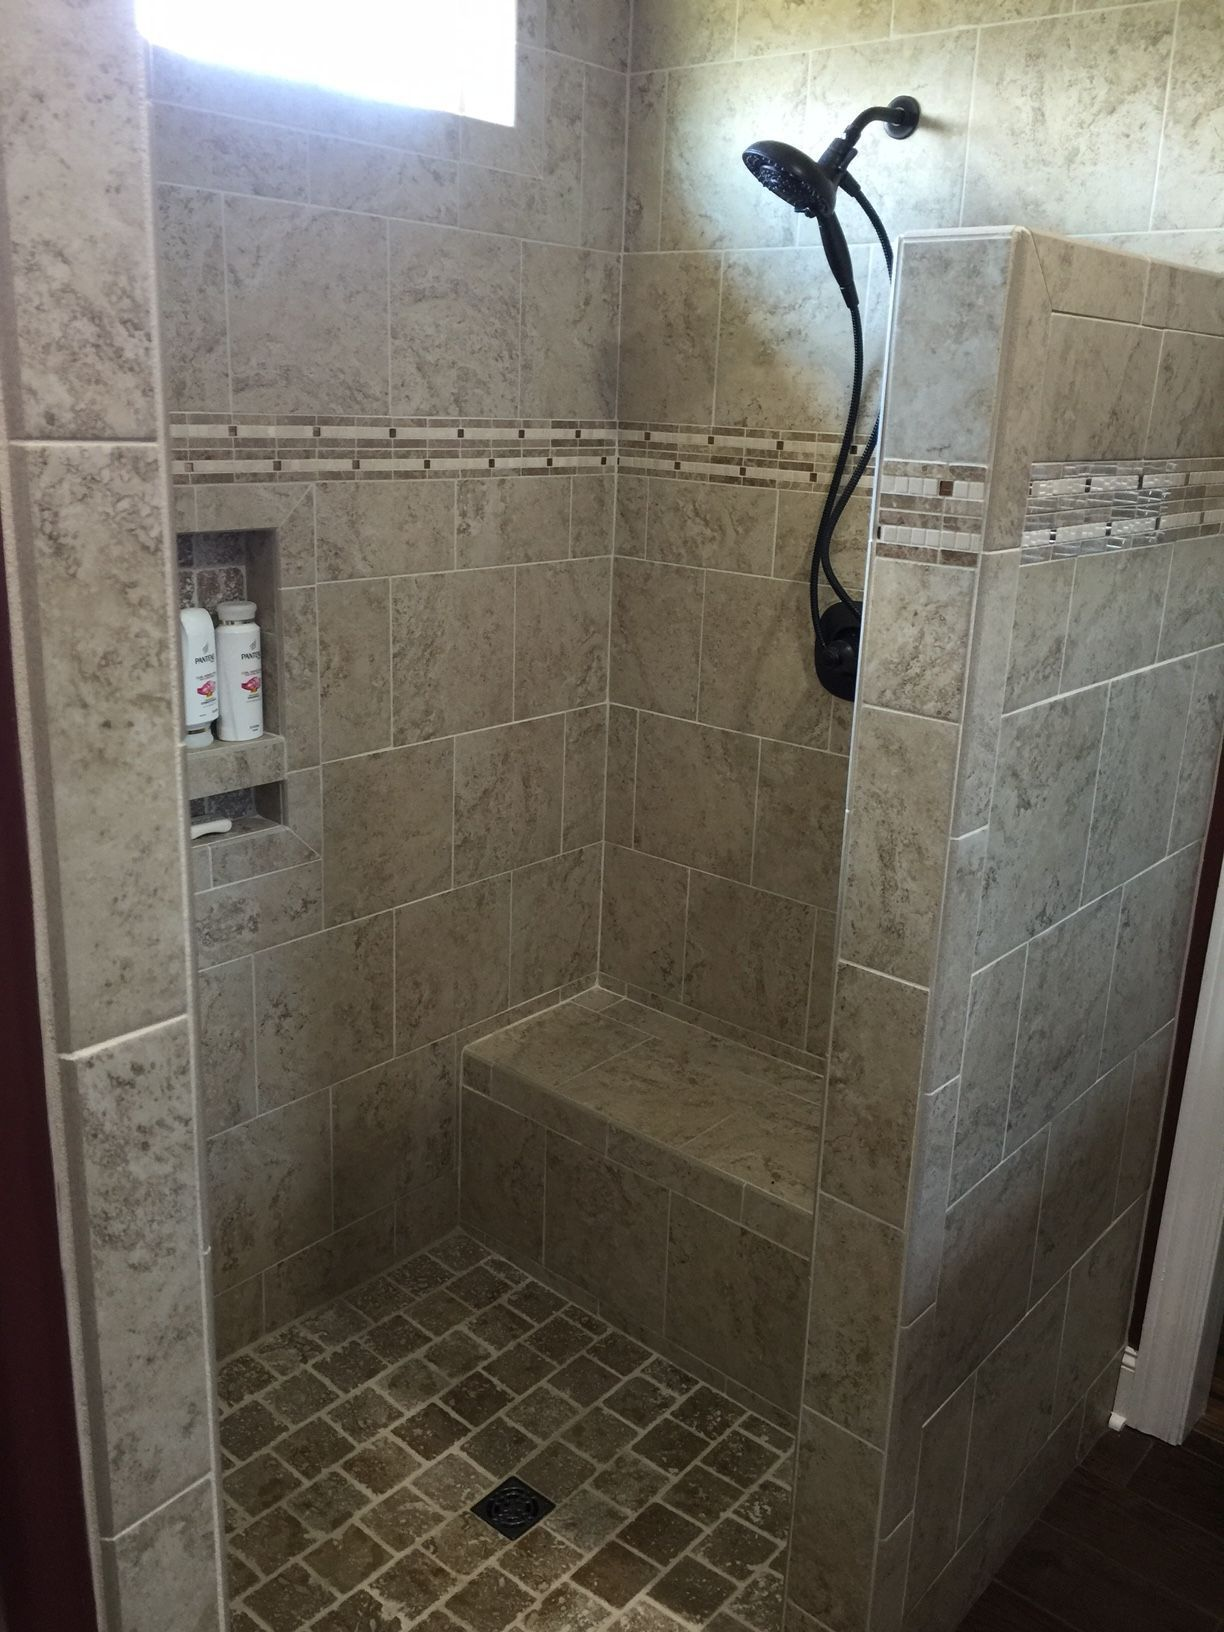 Diy Walk In Shower Kits.10 Ideas About Walk In Shower With Seat Without Seat